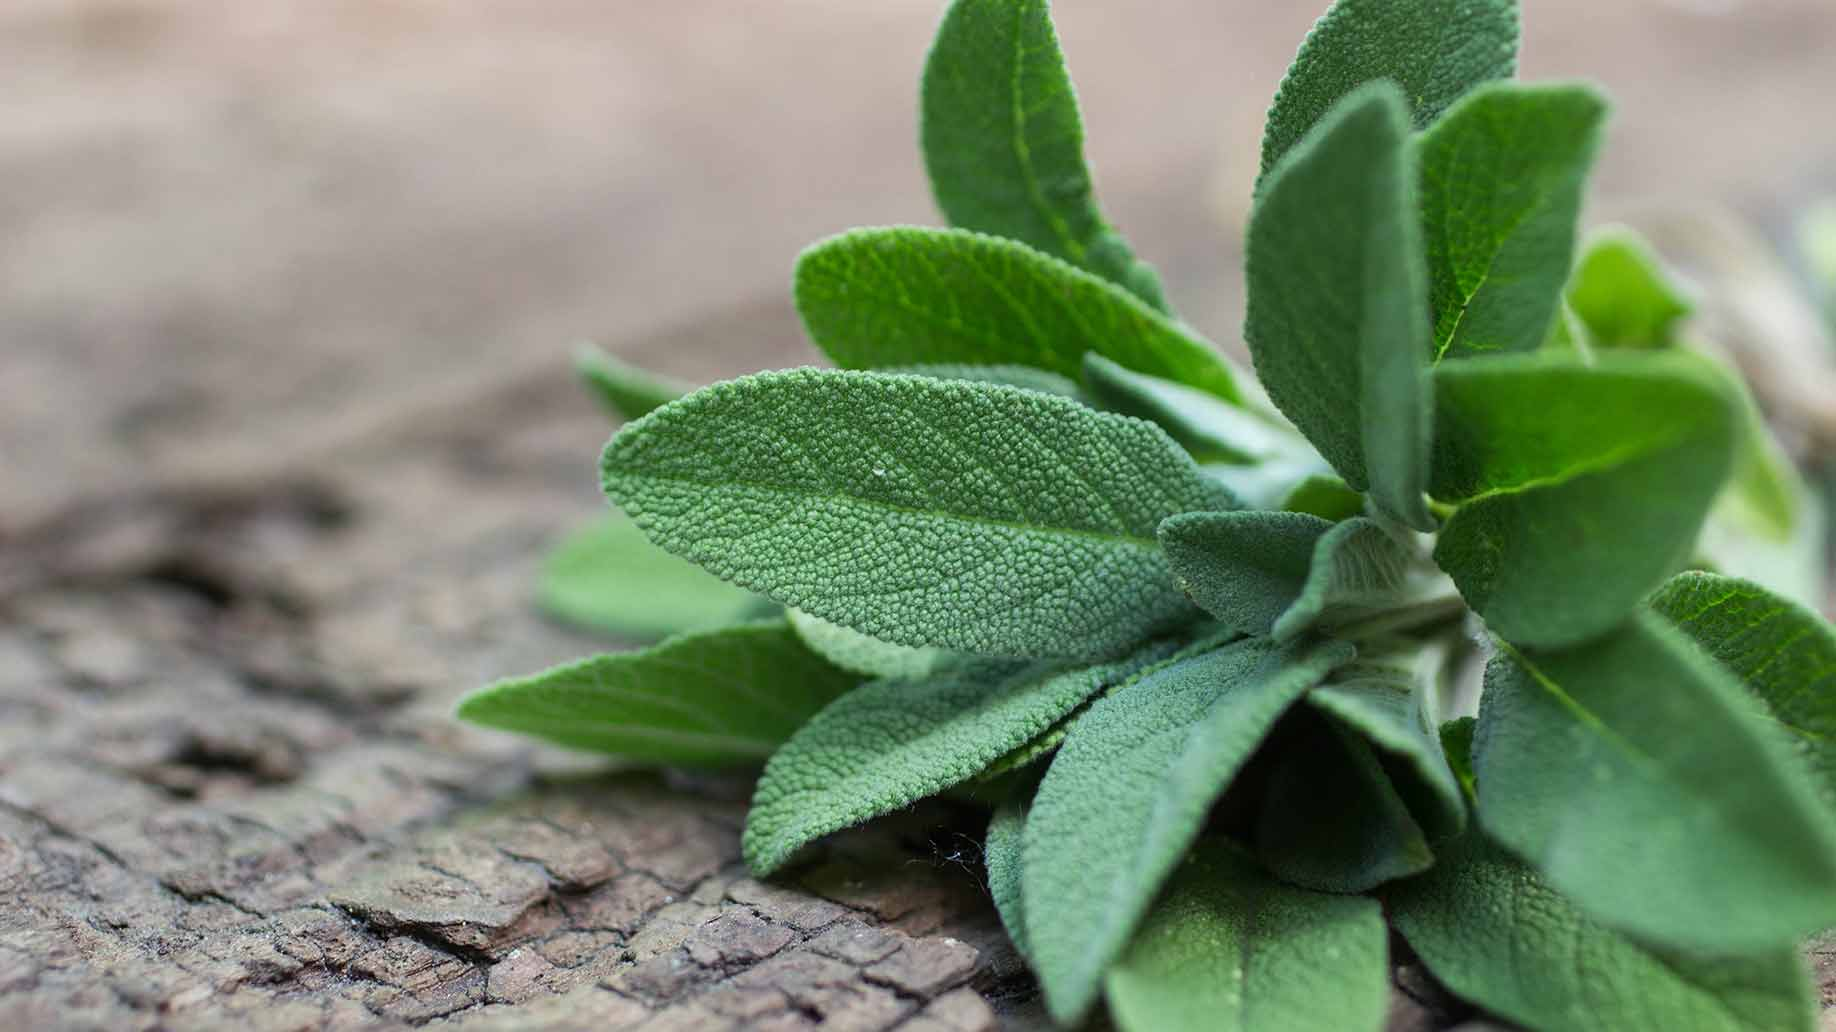 sage essential oil natural health benefits remedies cognitive function alzheimers disease fatigue fat metabolism cholesterol anti-inflammatory antioxidant antifungal antibacterial green herb